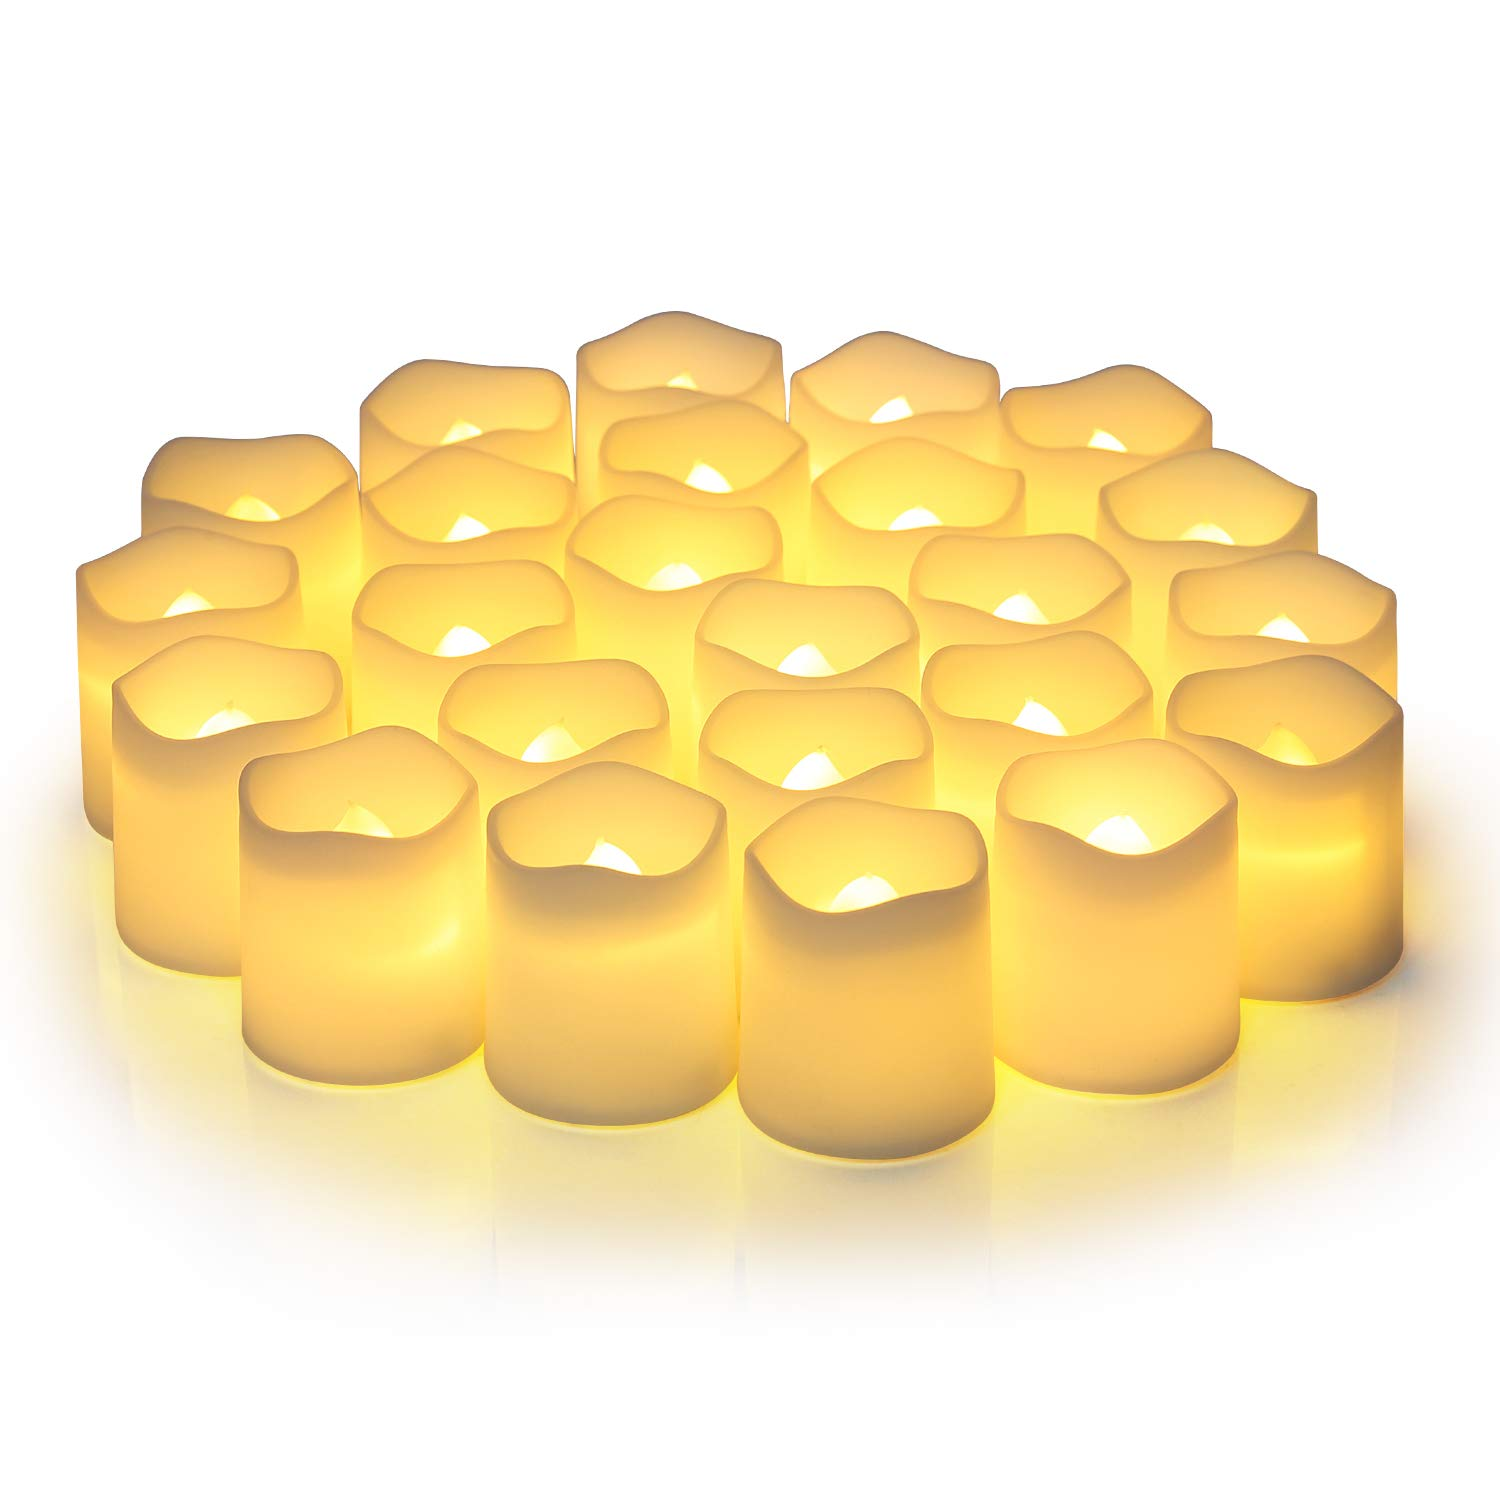 Flameless Votive Candles,Votive Flameless Candles,Flameless Votive Vandles Flickering,2 Inch Candles Votive Led Candles in Warm White and Wave Open(Pack of 24)